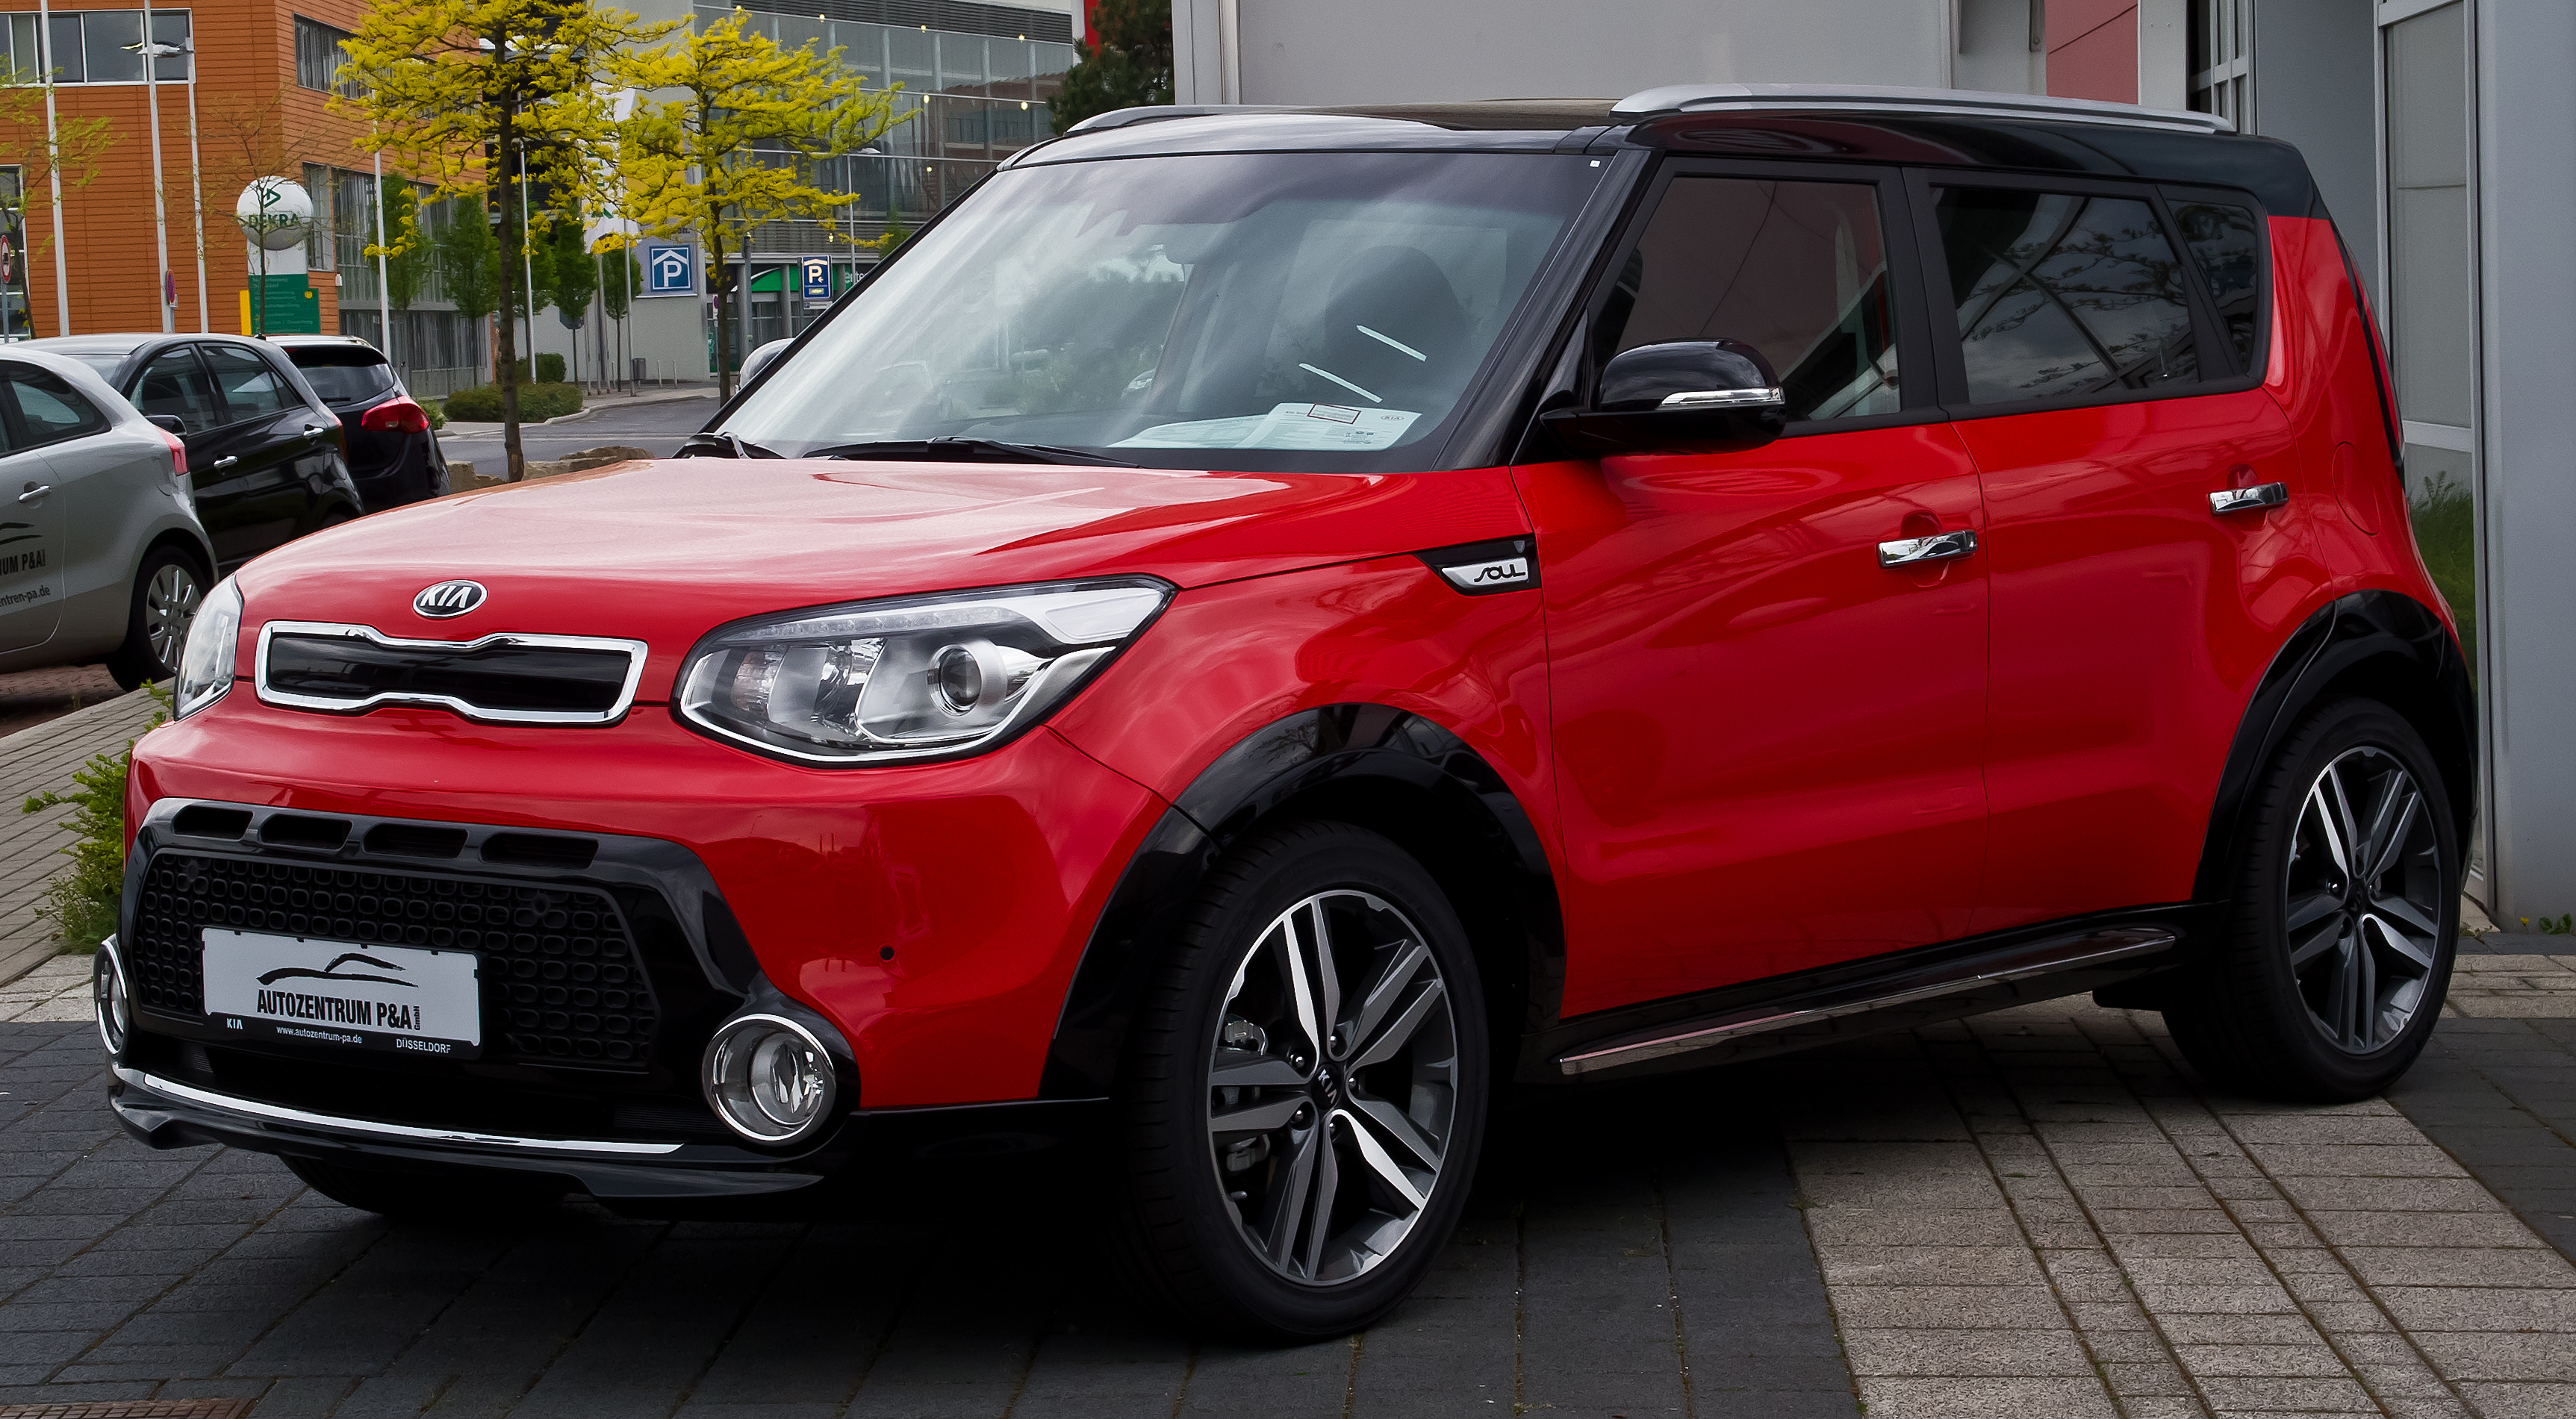 2019 Kia Soul: Coming Redesigned And Possibly With The All-wheel Drive >> Kia Soul Wikipedia